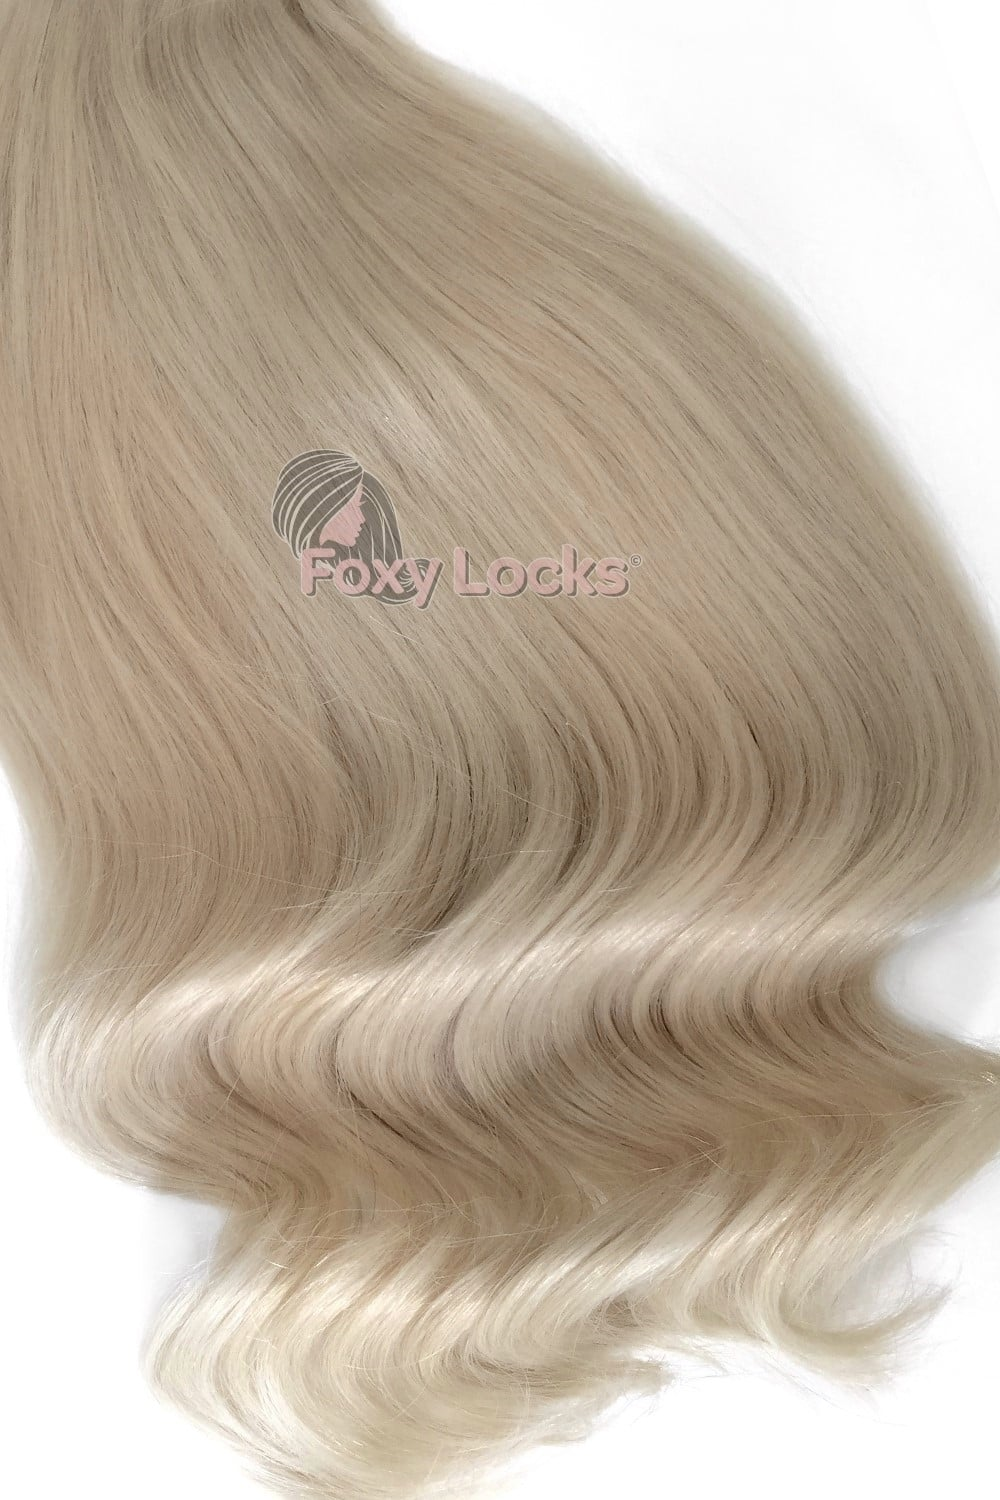 Platinum blonde 90 luxurious 24 clip in human hair extensions 280g 24 clip in human hair extensions 280g click to enlarge pmusecretfo Image collections